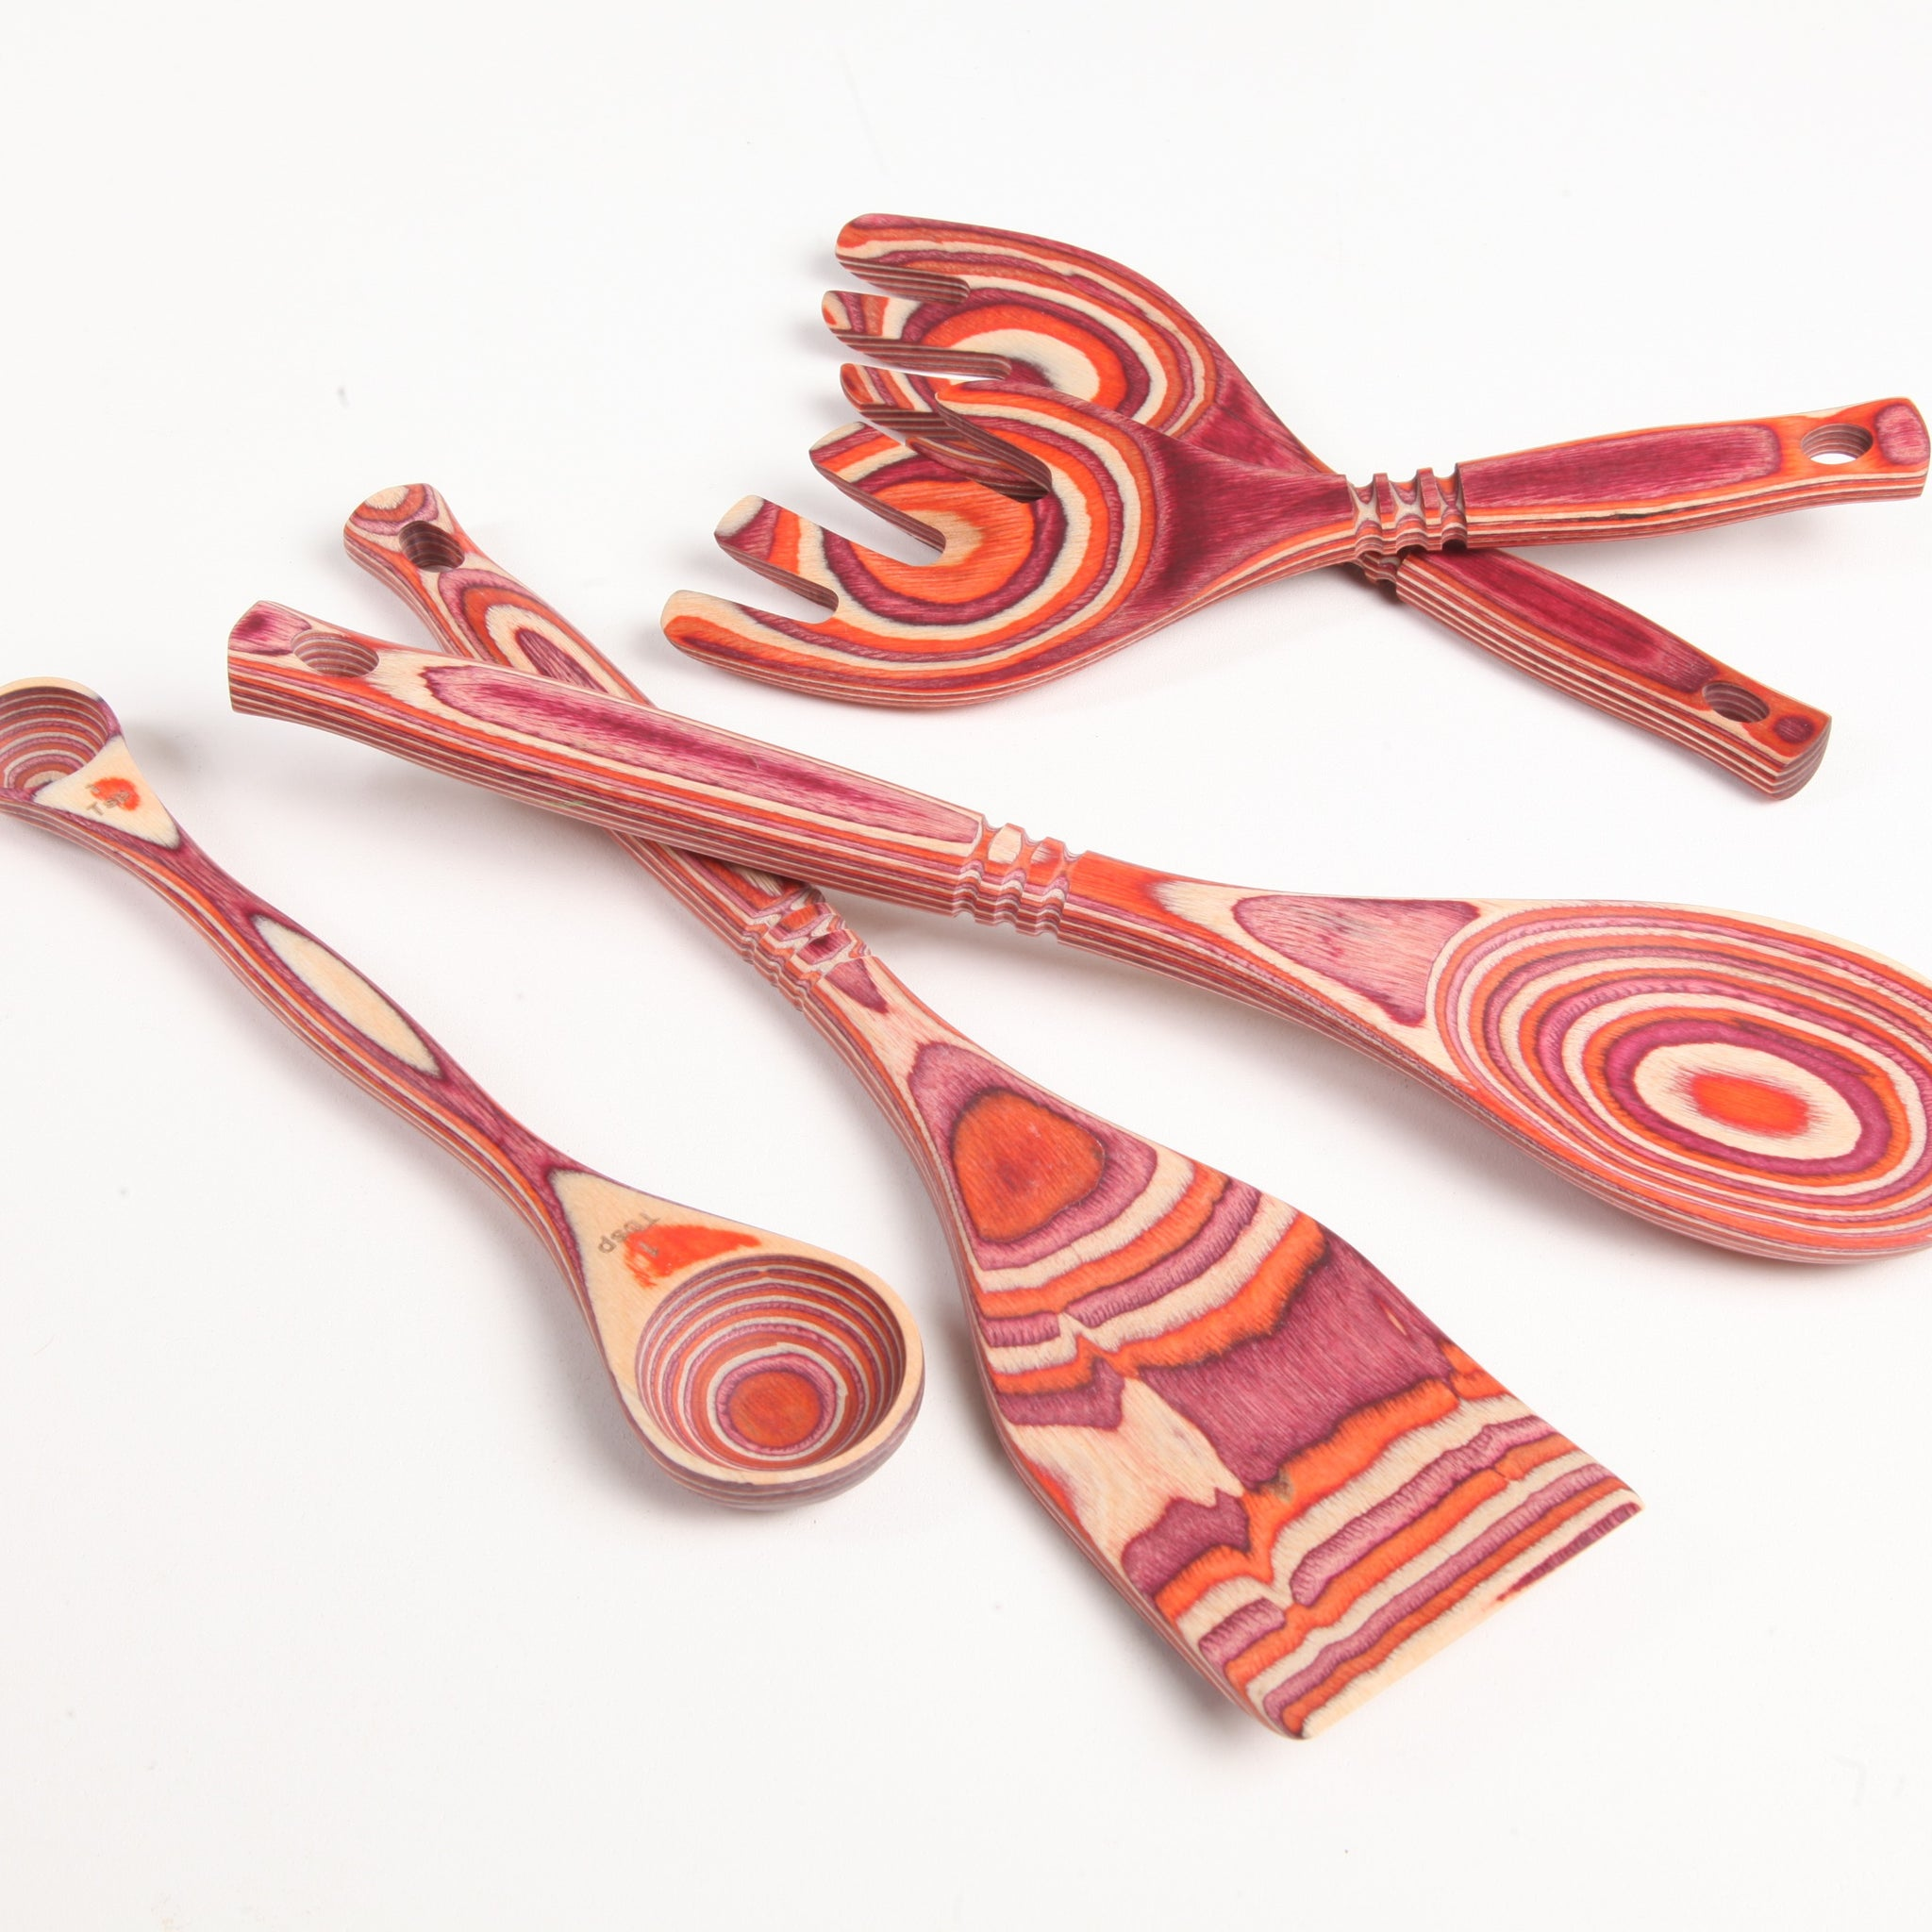 Red Pakka Utensil Collection